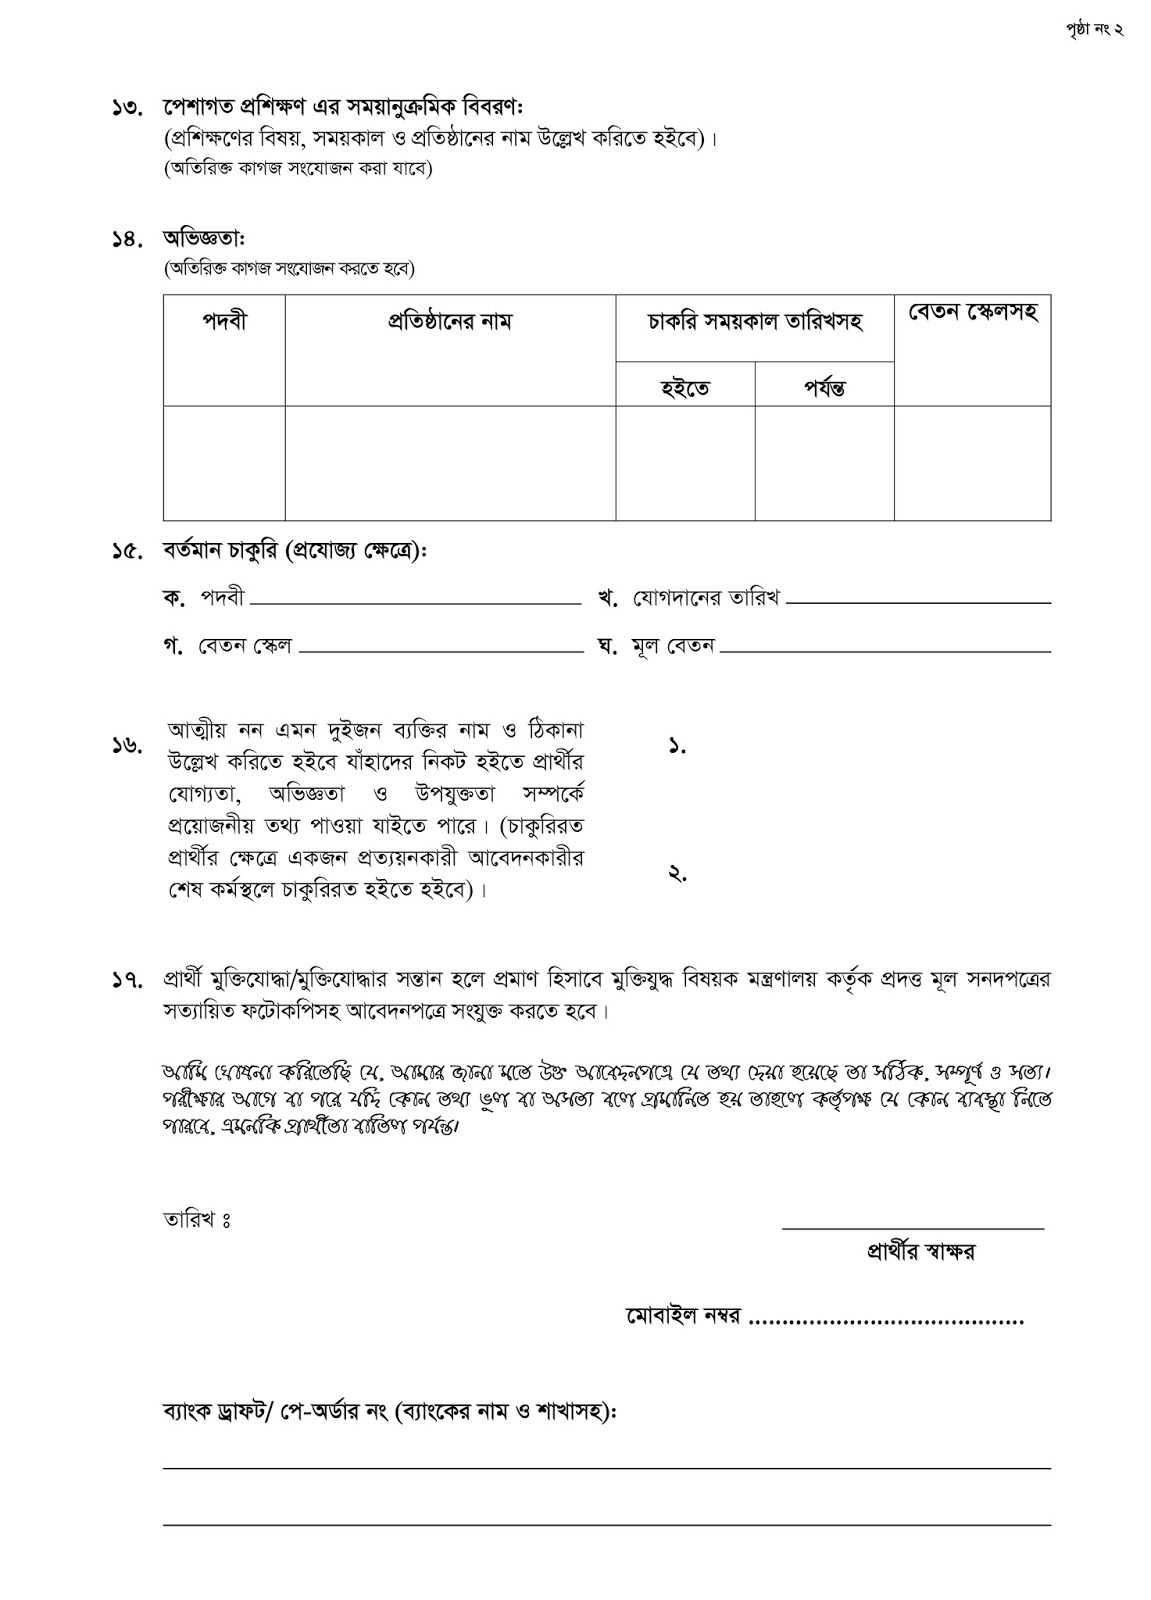 Bangabandhu Sheikh Mujib Medical University (BSMMU) Professor Recruitment Application Form